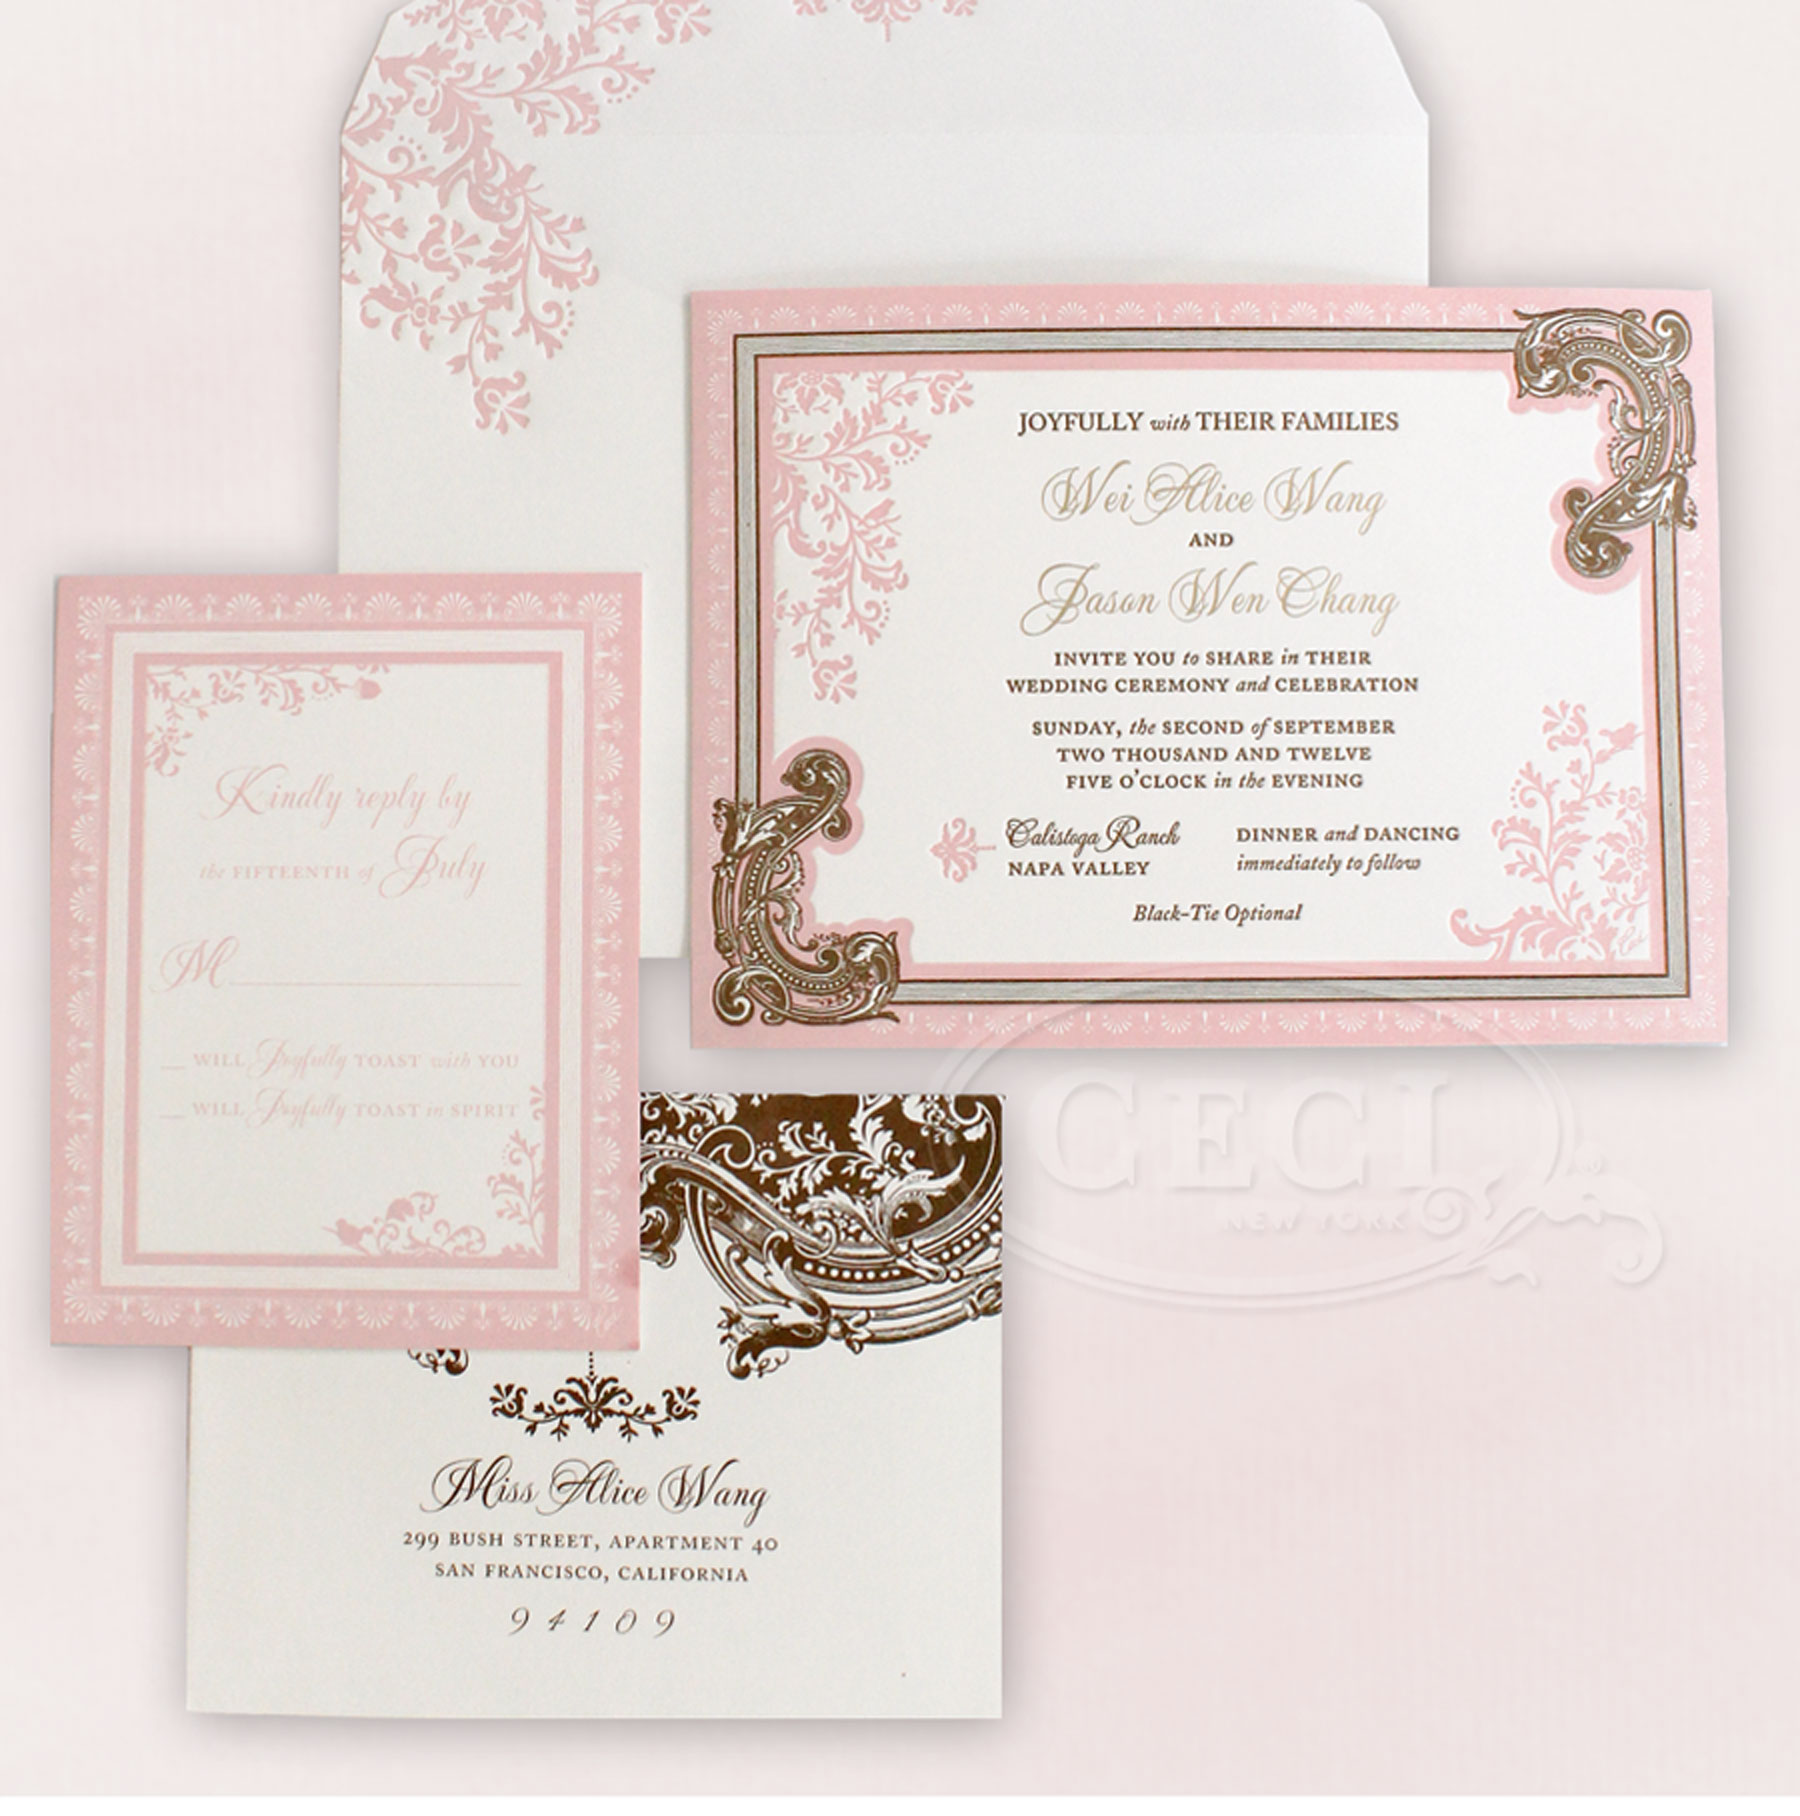 v165 our muse elegant ornate wedding alice and jason, part 1 Luxury Elegant Wedding Invitations luxury wedding invitations by ceci new york our muse elegant ornate wedding be luxury elegant wedding invitations